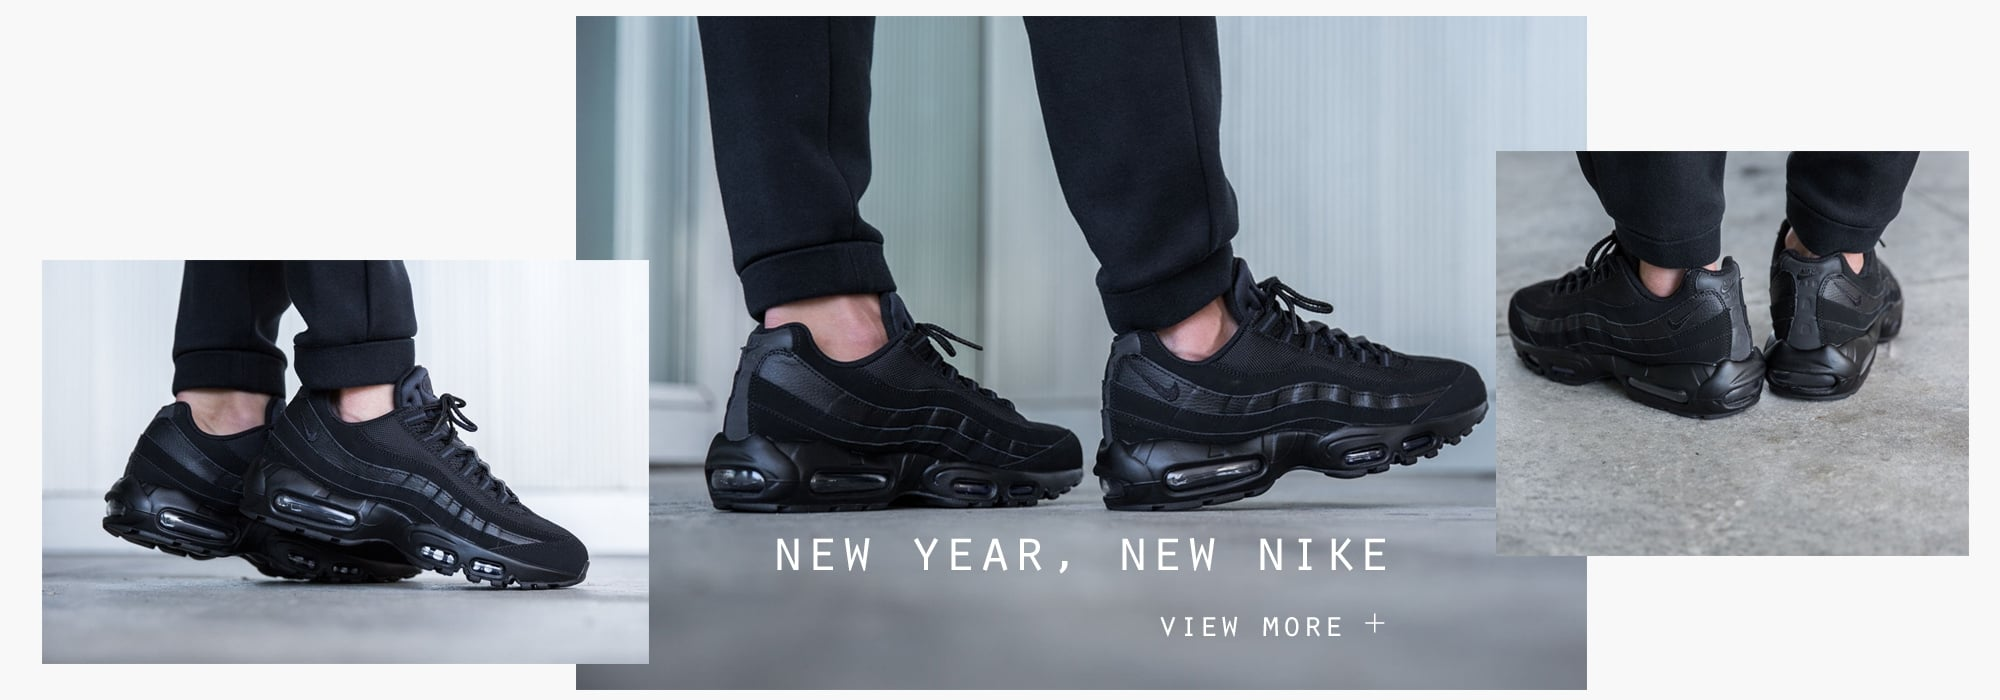 New Year New Nike